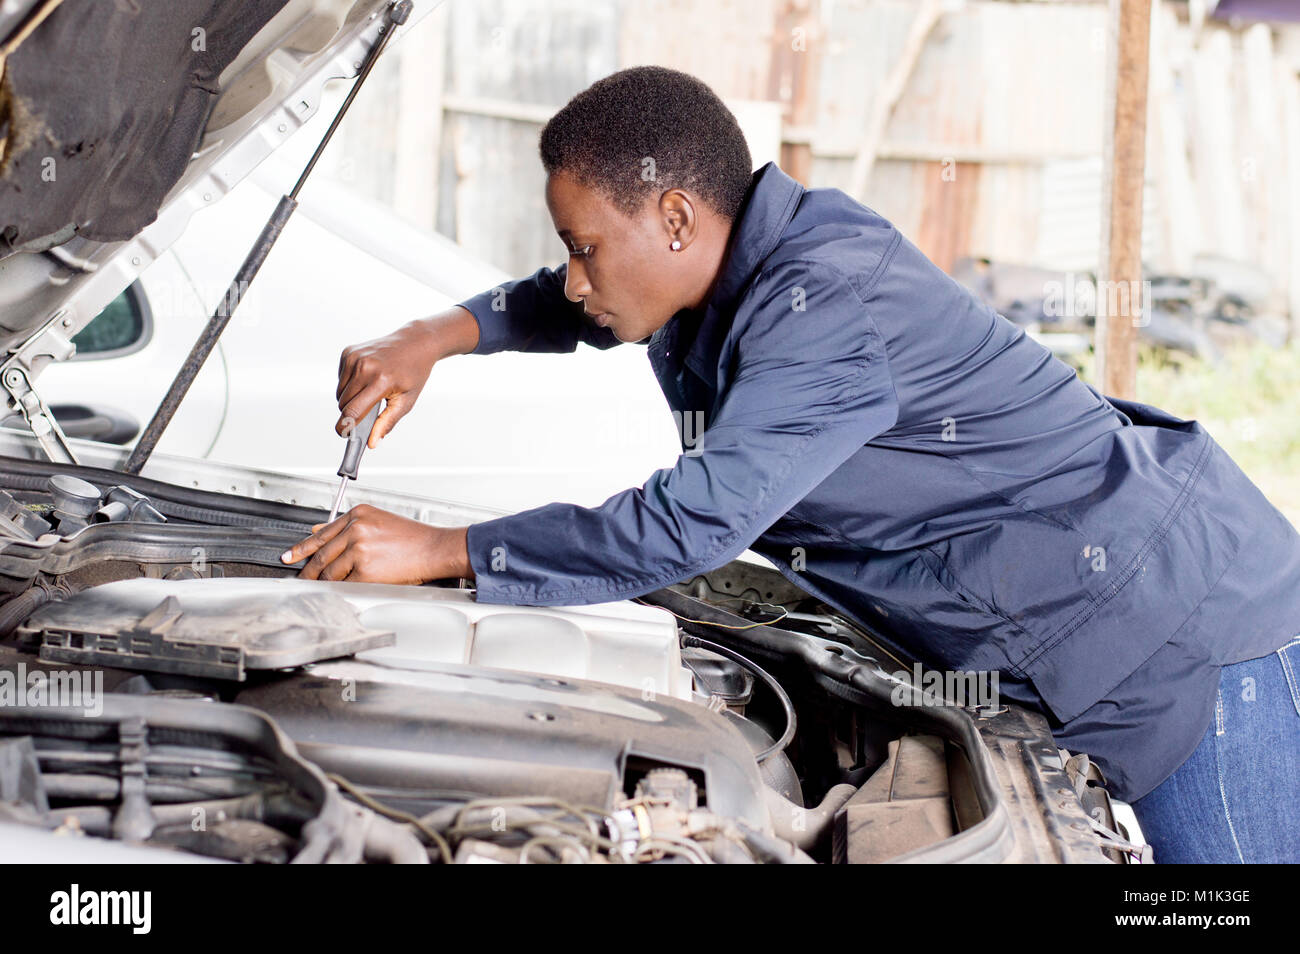 Mechanic  repairs the engine of a car in her  workshop. - Stock Image